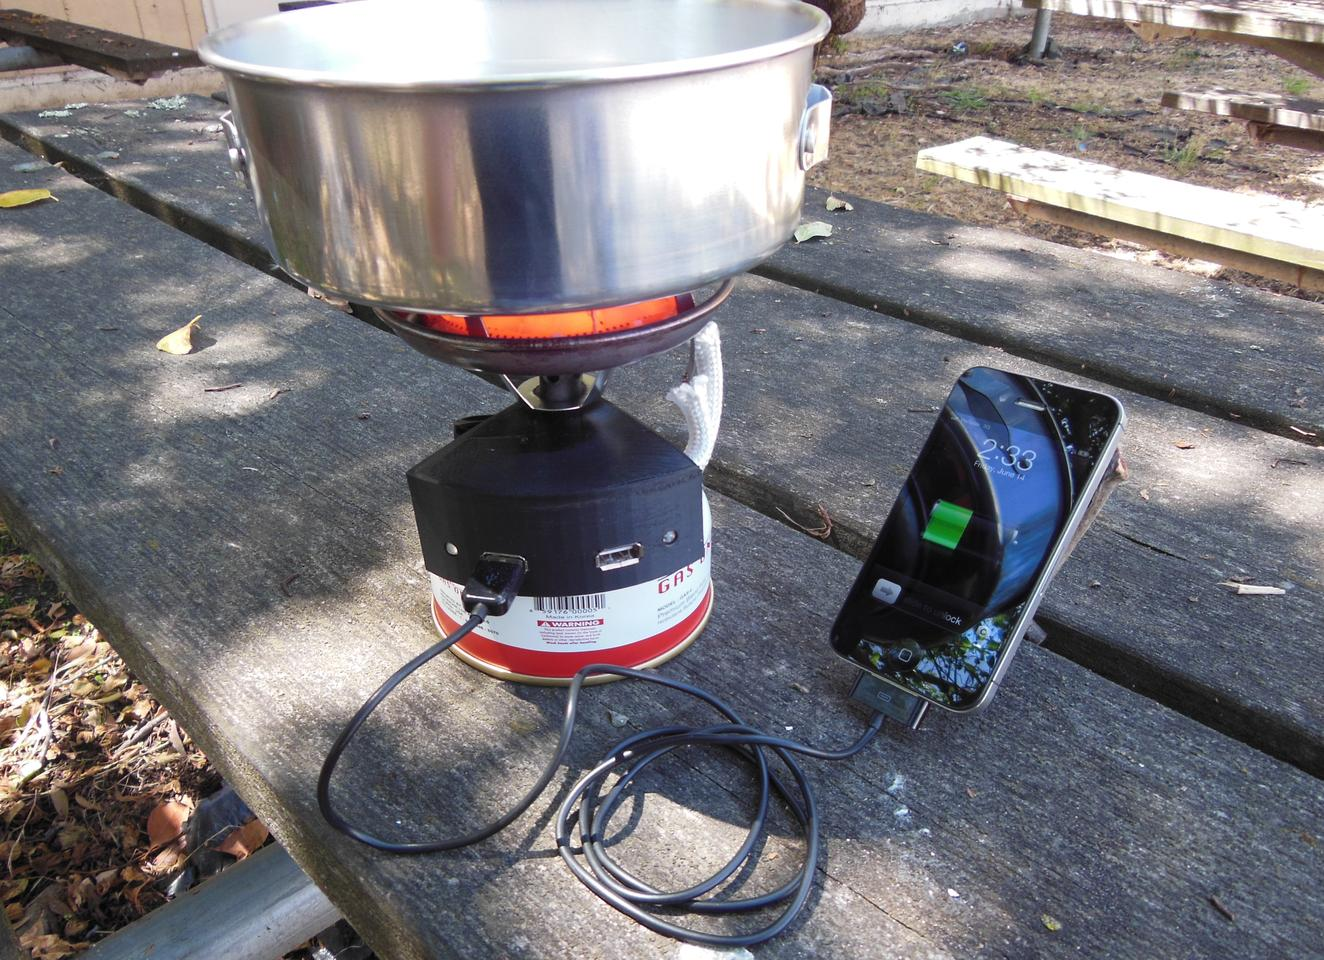 The Halo is a backpacking stove with built-in fuel cell charger for charging mobile devices